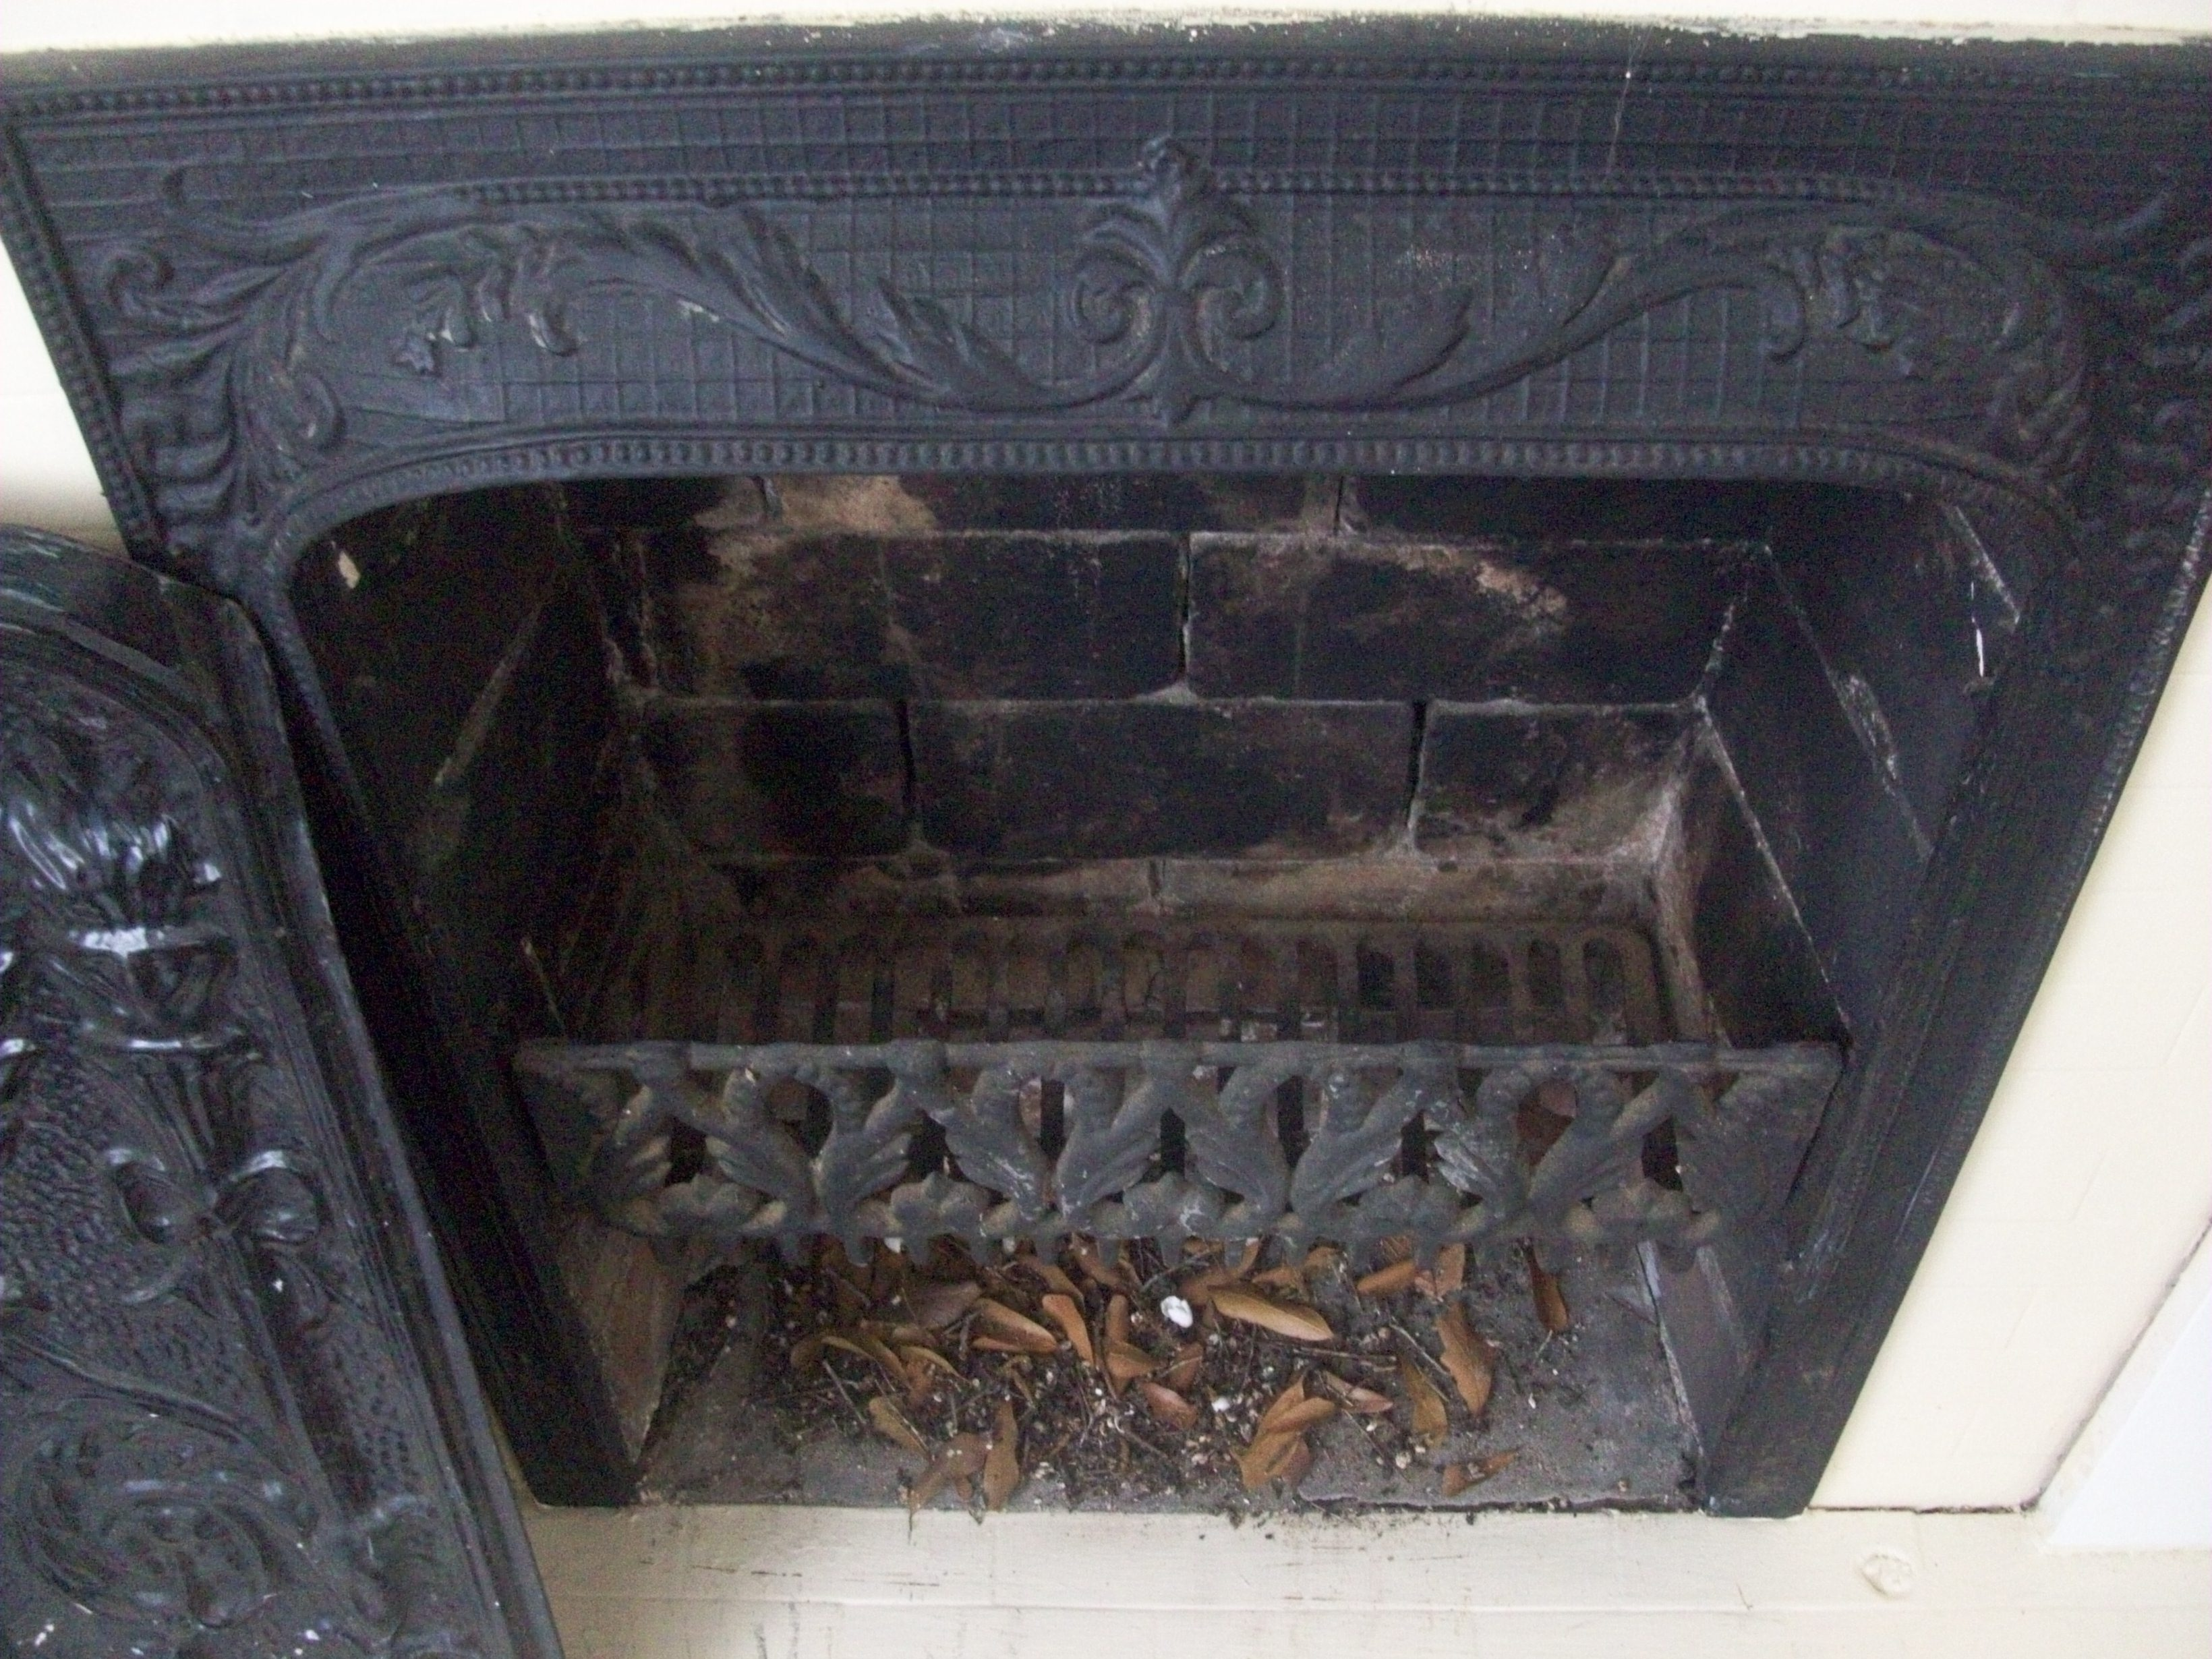 Figuring Out The Fireplace Living Well On The Cheap